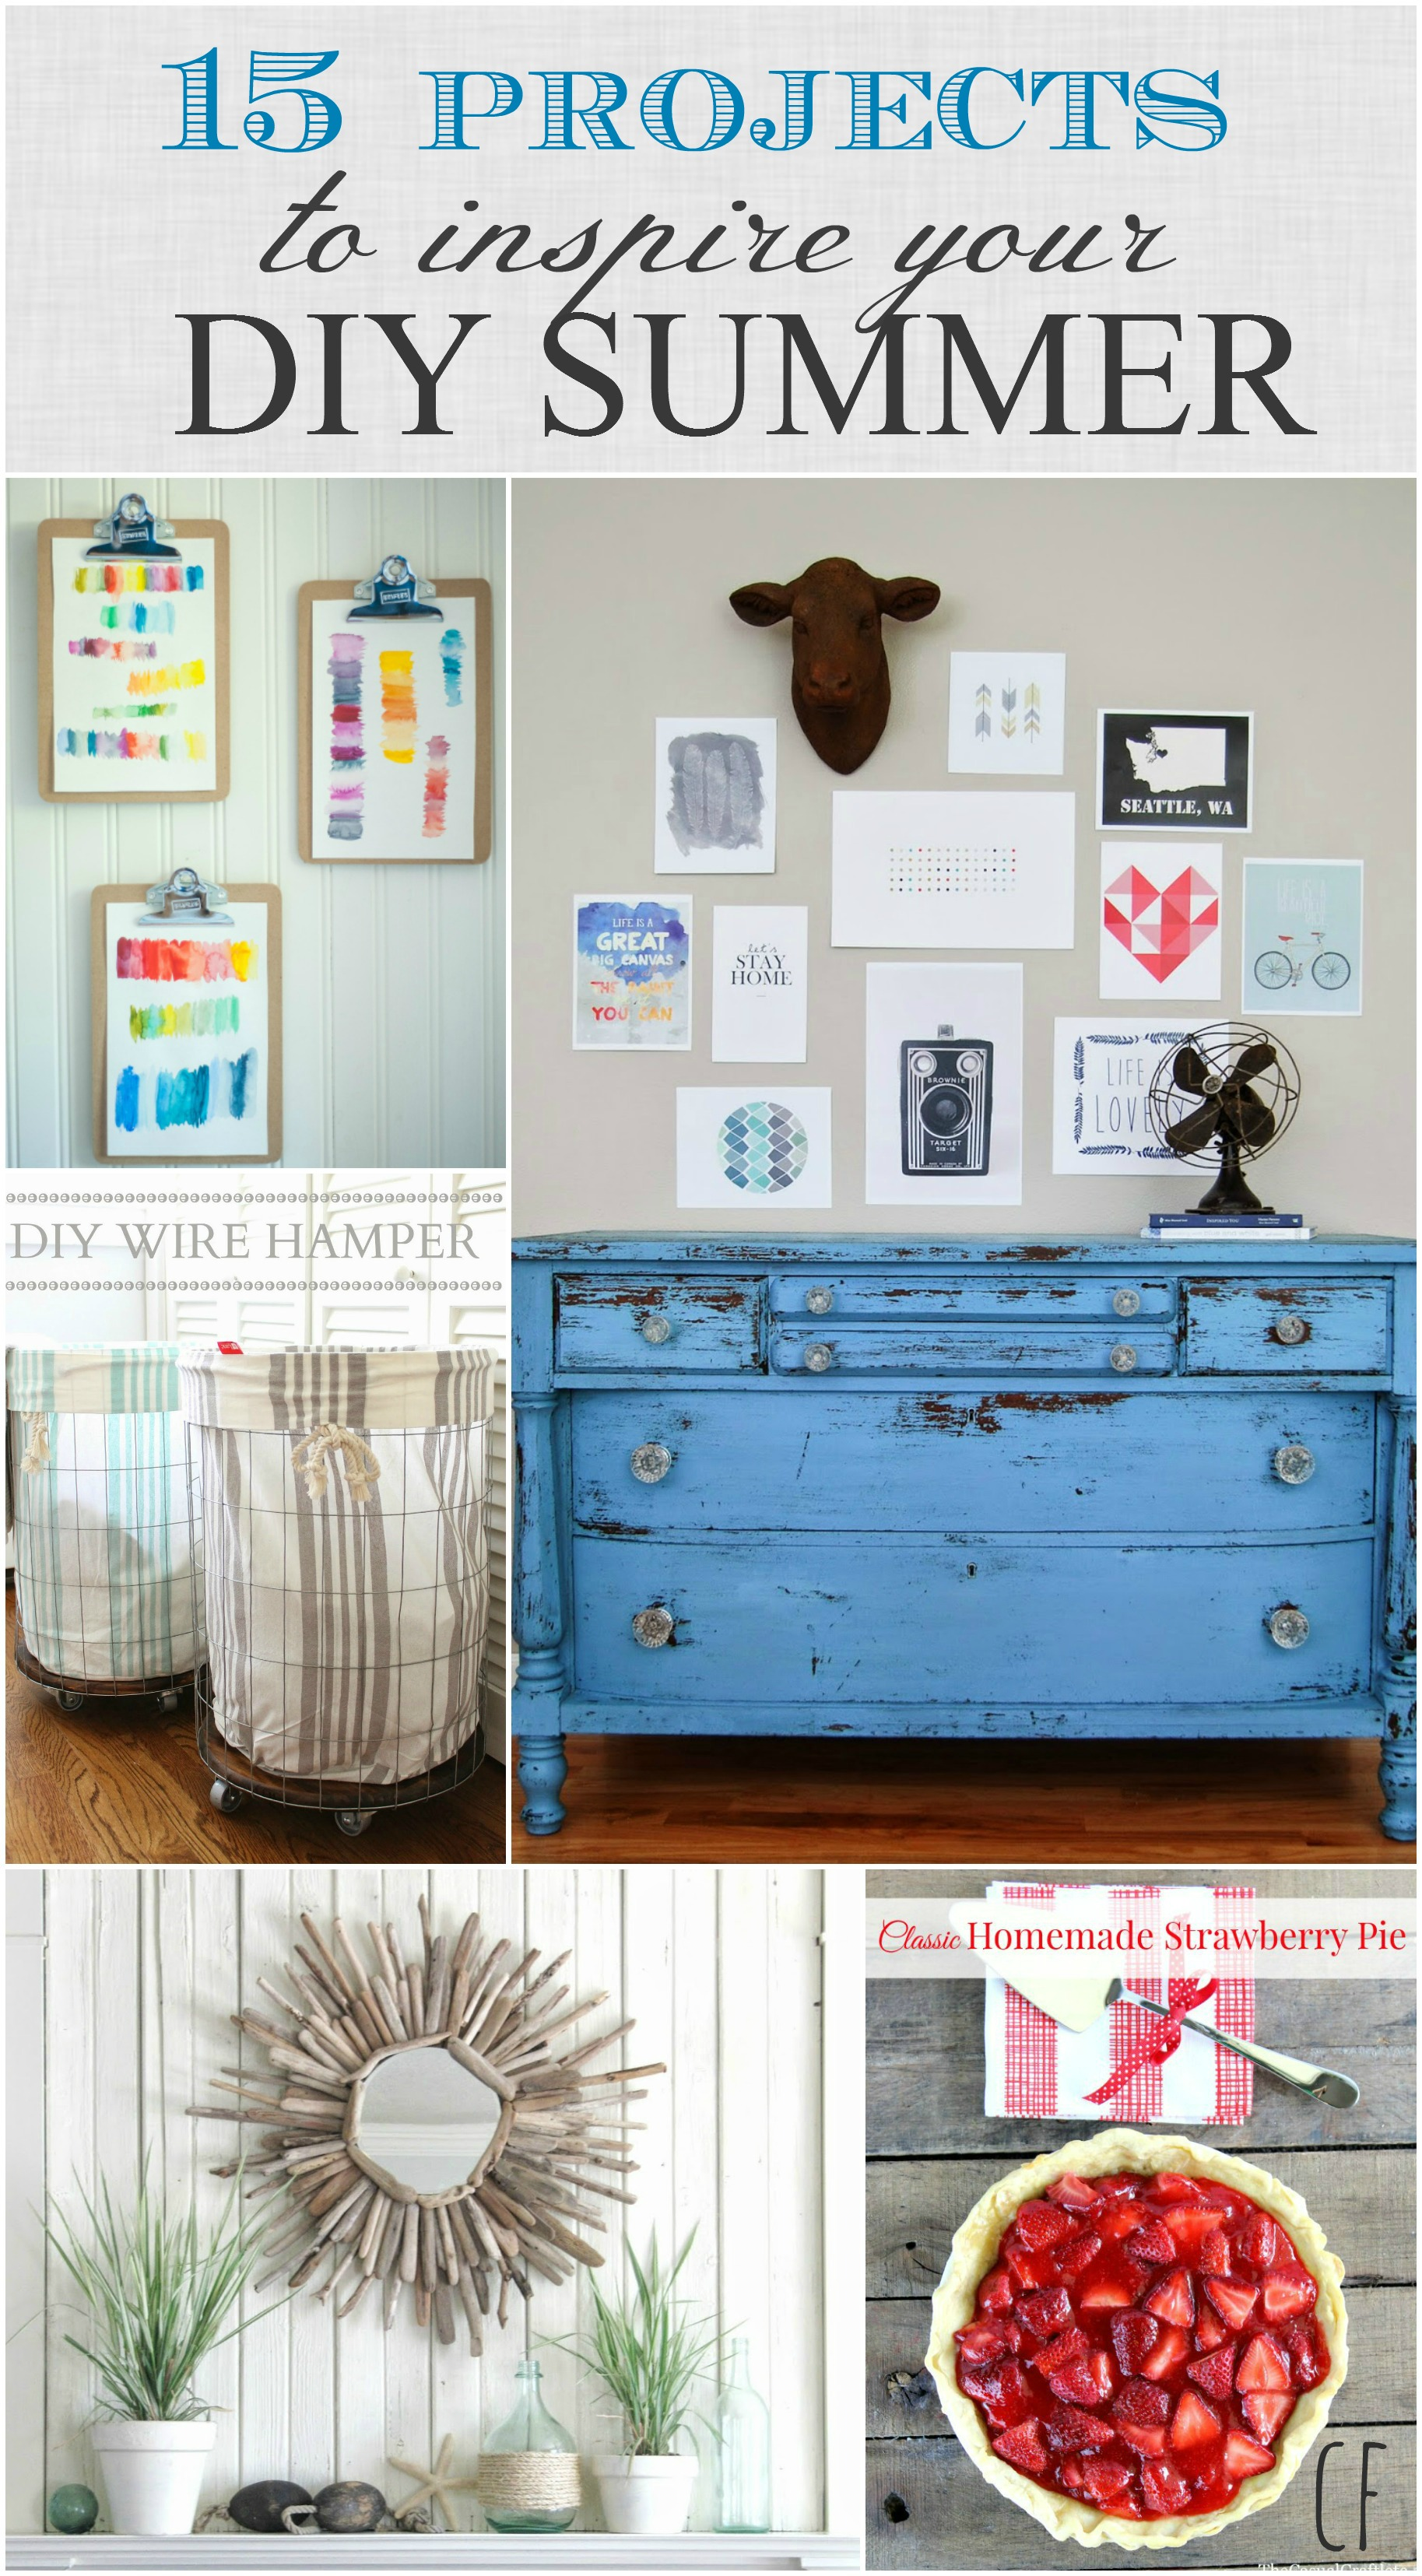 15 Amazing Projects To Inspire Your DIY Summer - City Farmhouse